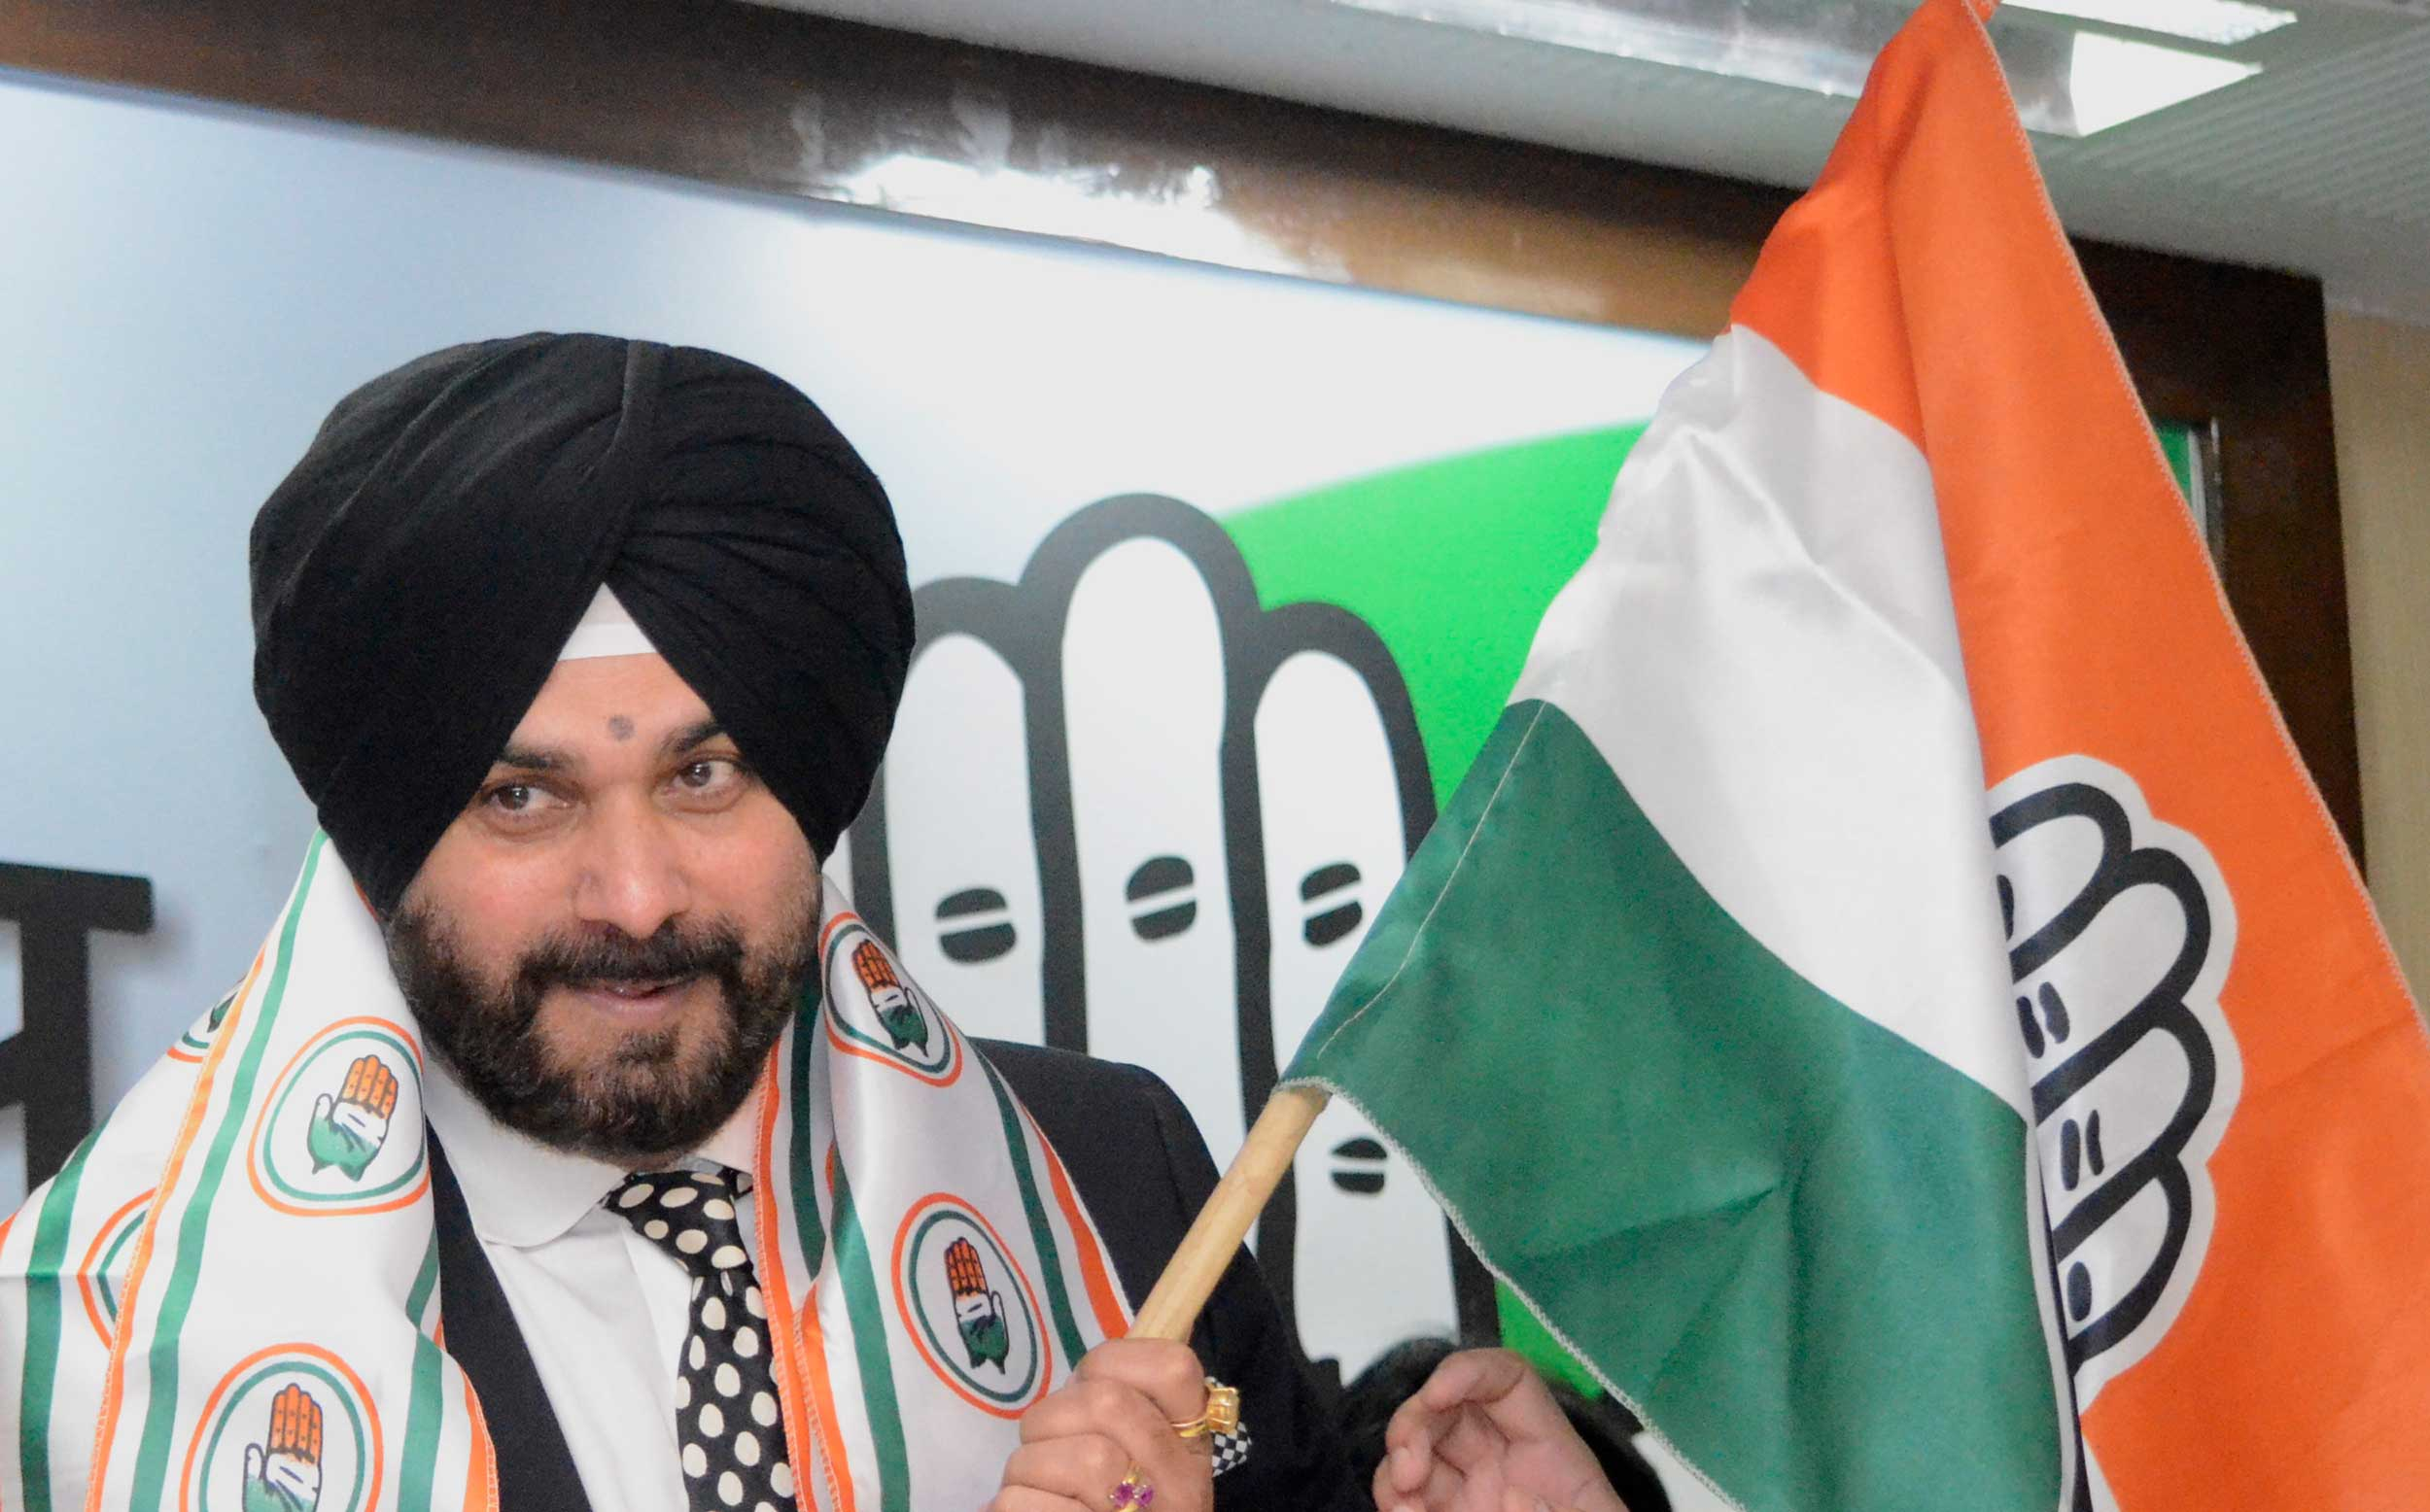 TV 'axe' on Sidhu after he gets flak for Pulwama comment